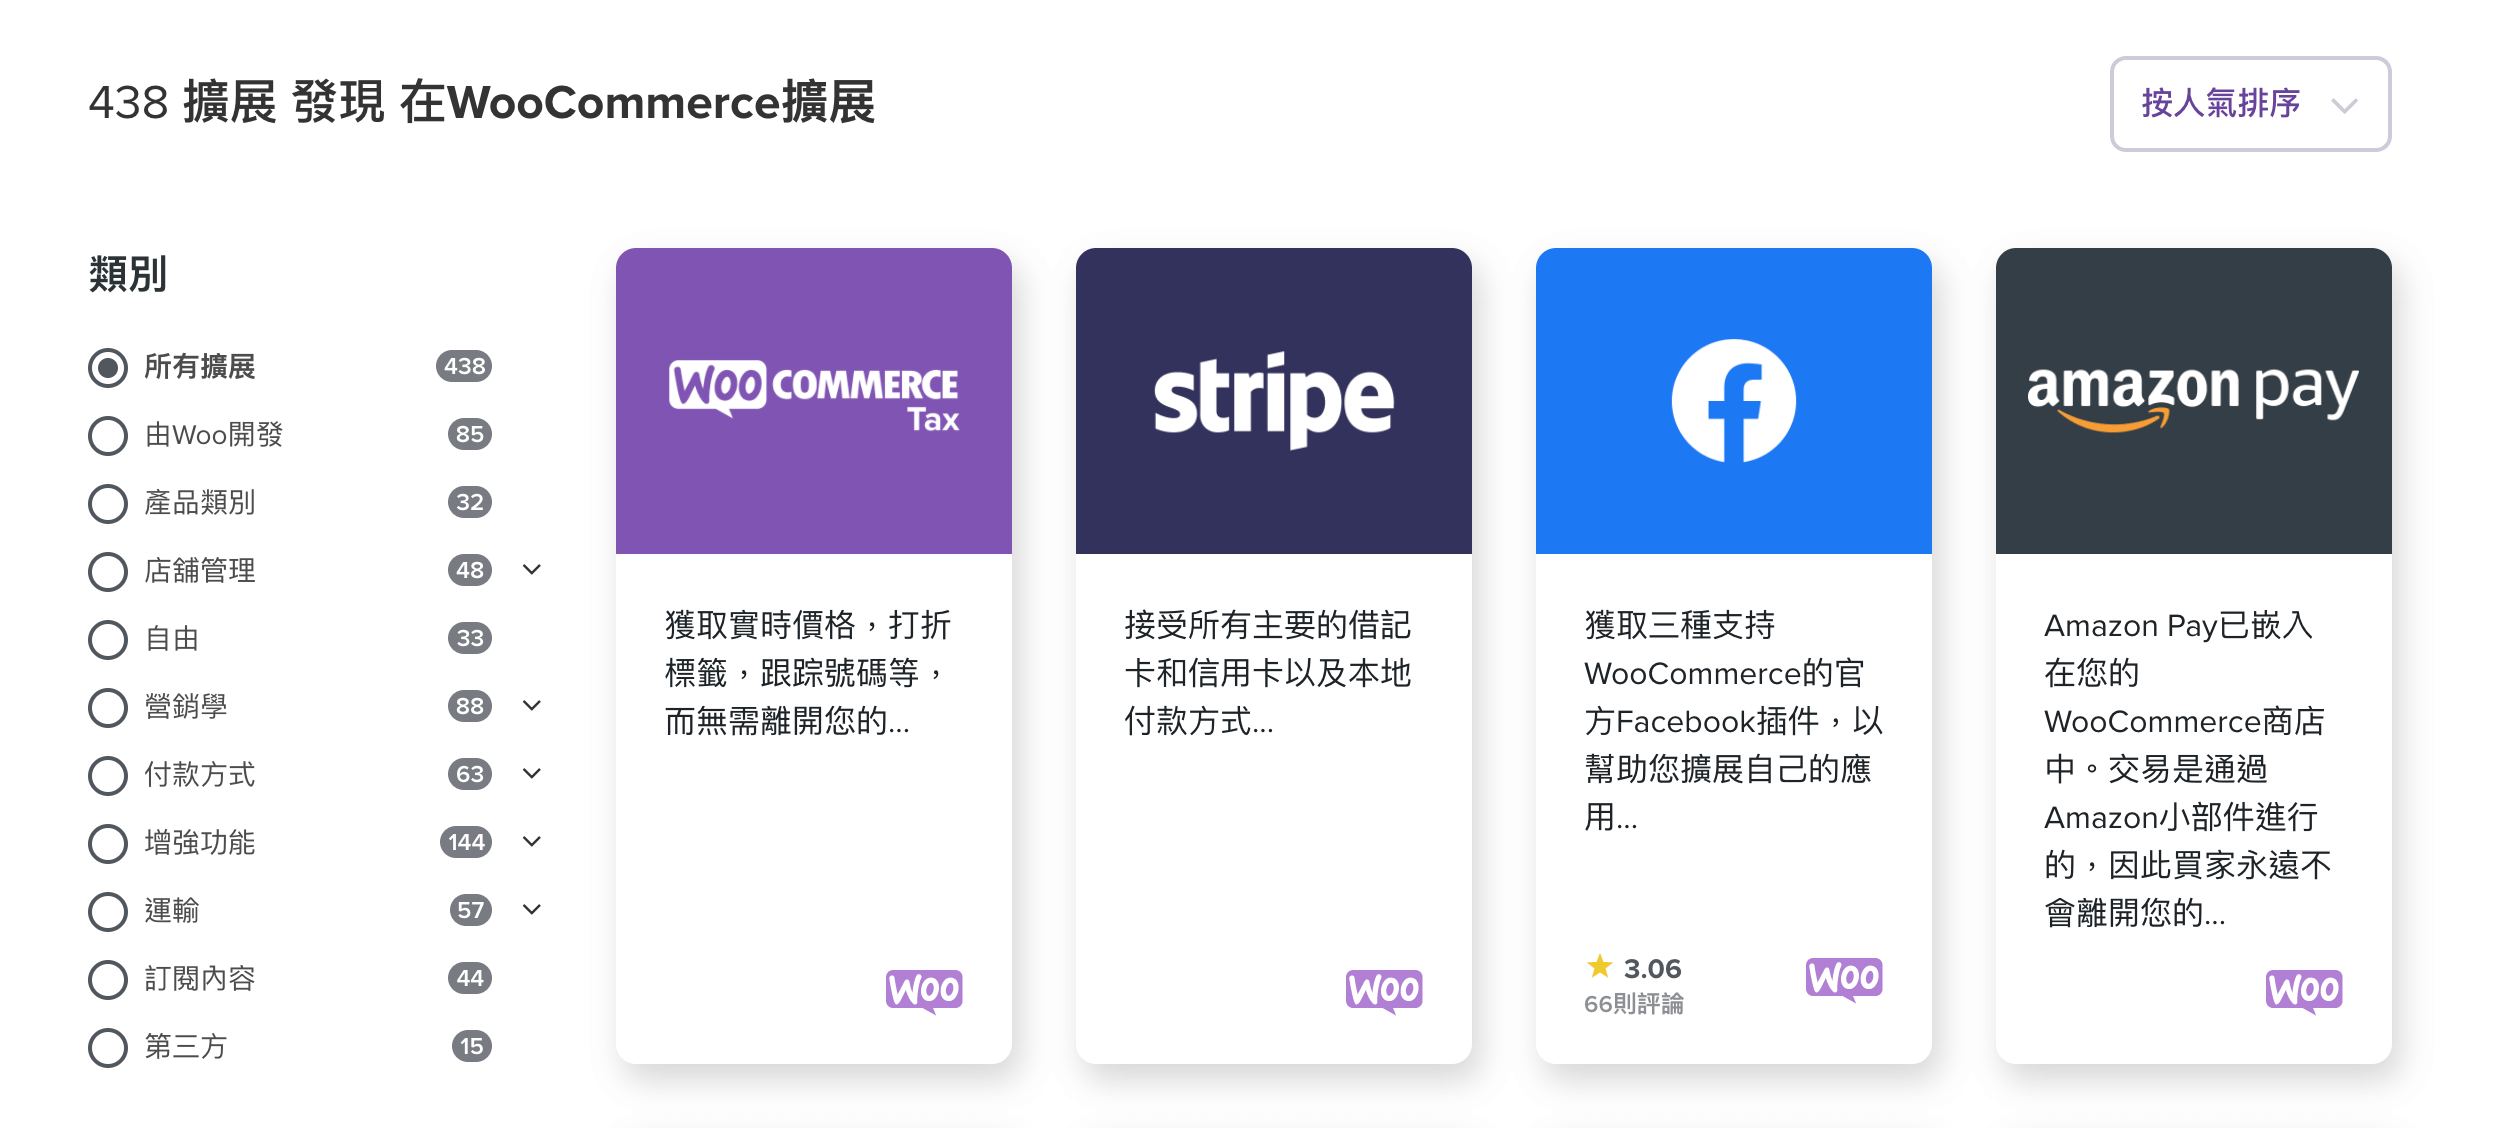 架設購物網站 :wordpress woocommerce 外掛